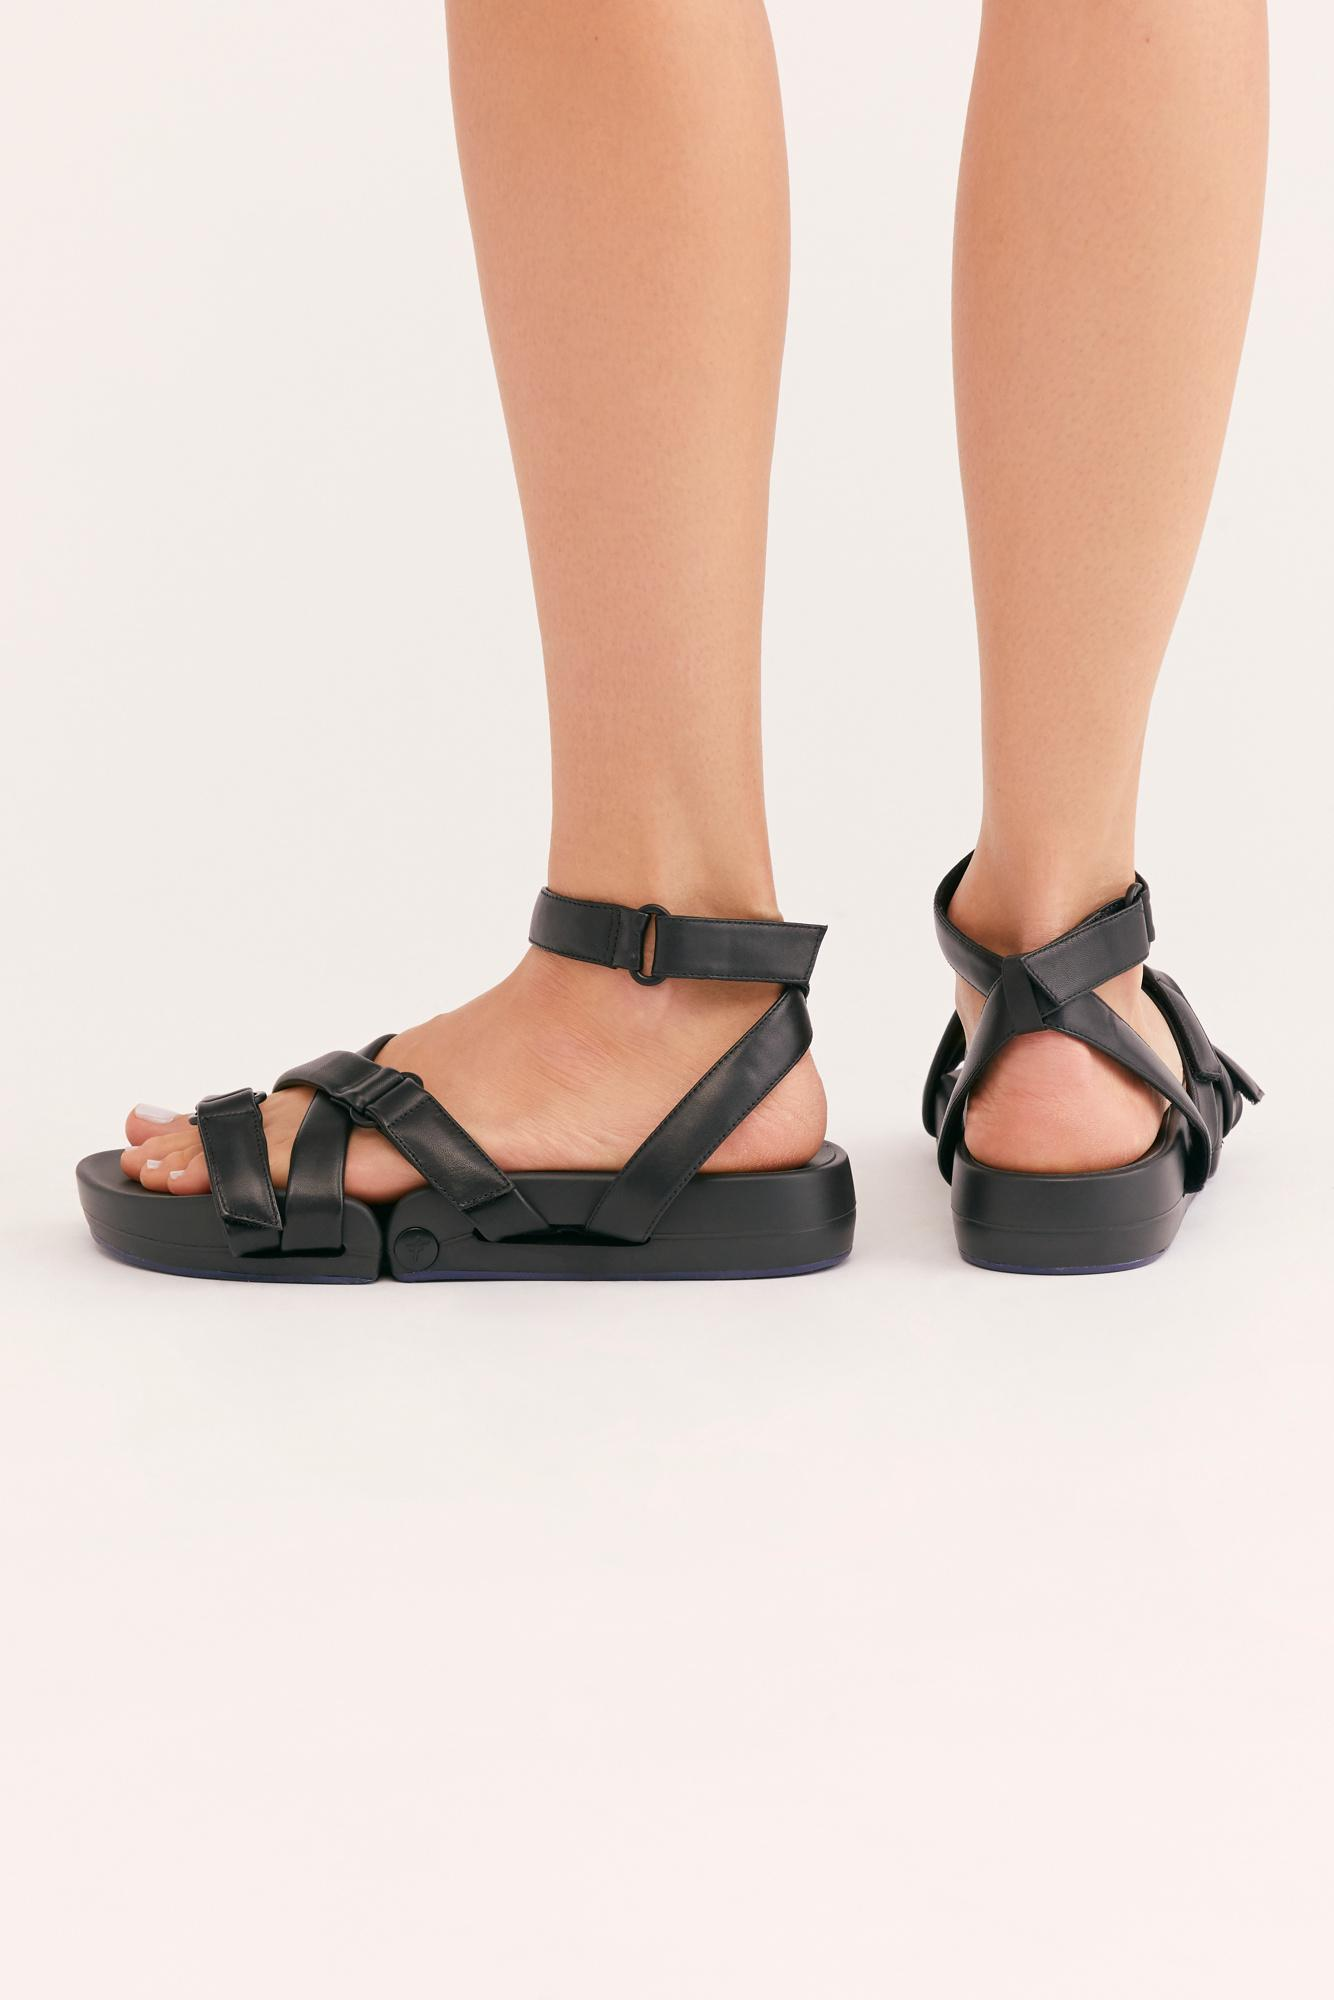 Leather Figs Movement Sneaker Sandal